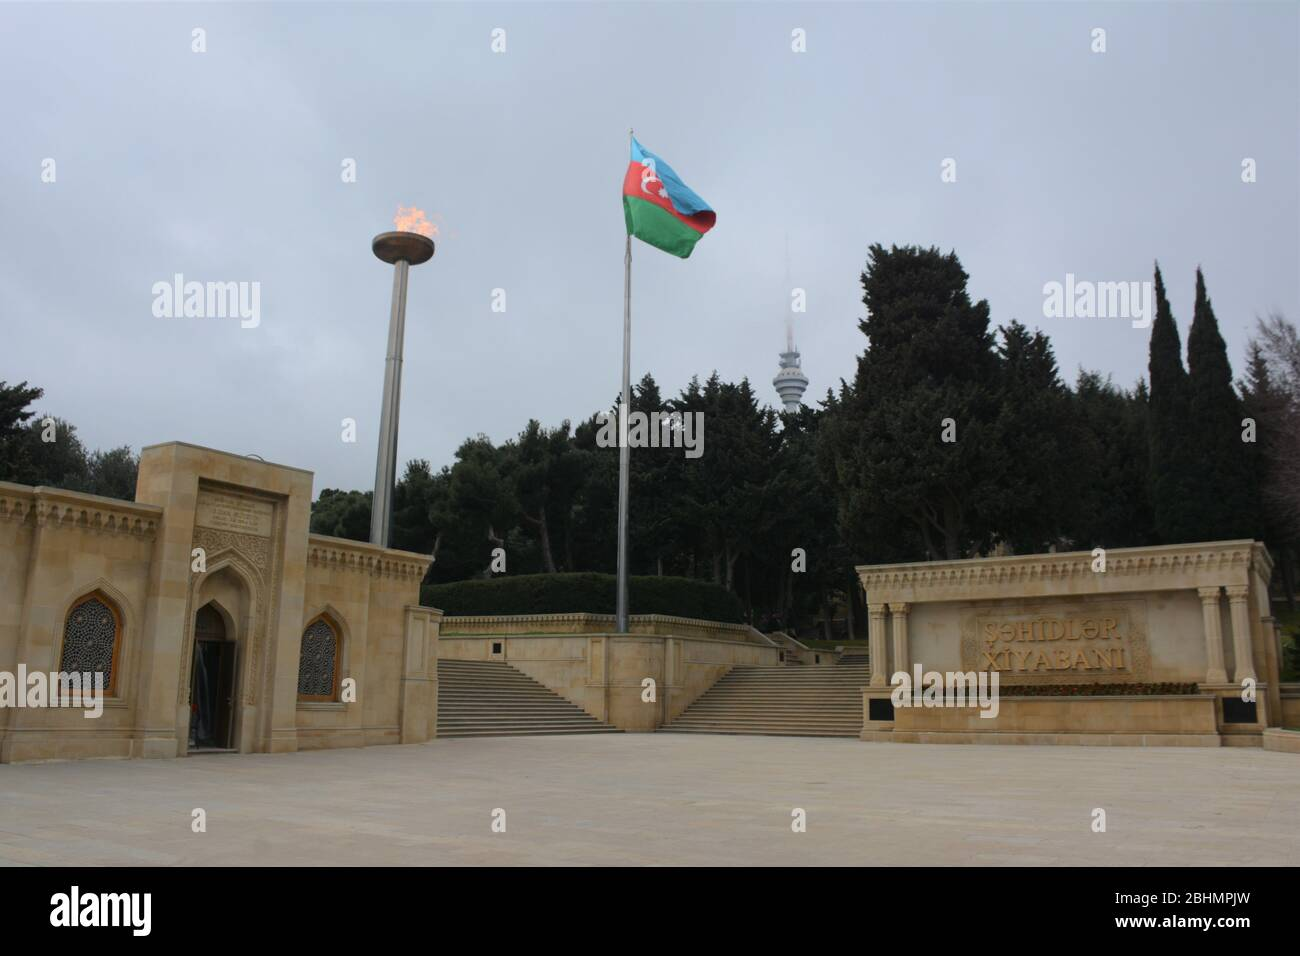 Sahidlar Xiyabani, also known as Martyrs' Lane and Alley of Martyrs, is a cemetery, memorial and viewpoint in Baku, Azarbaijan. Stock Photo